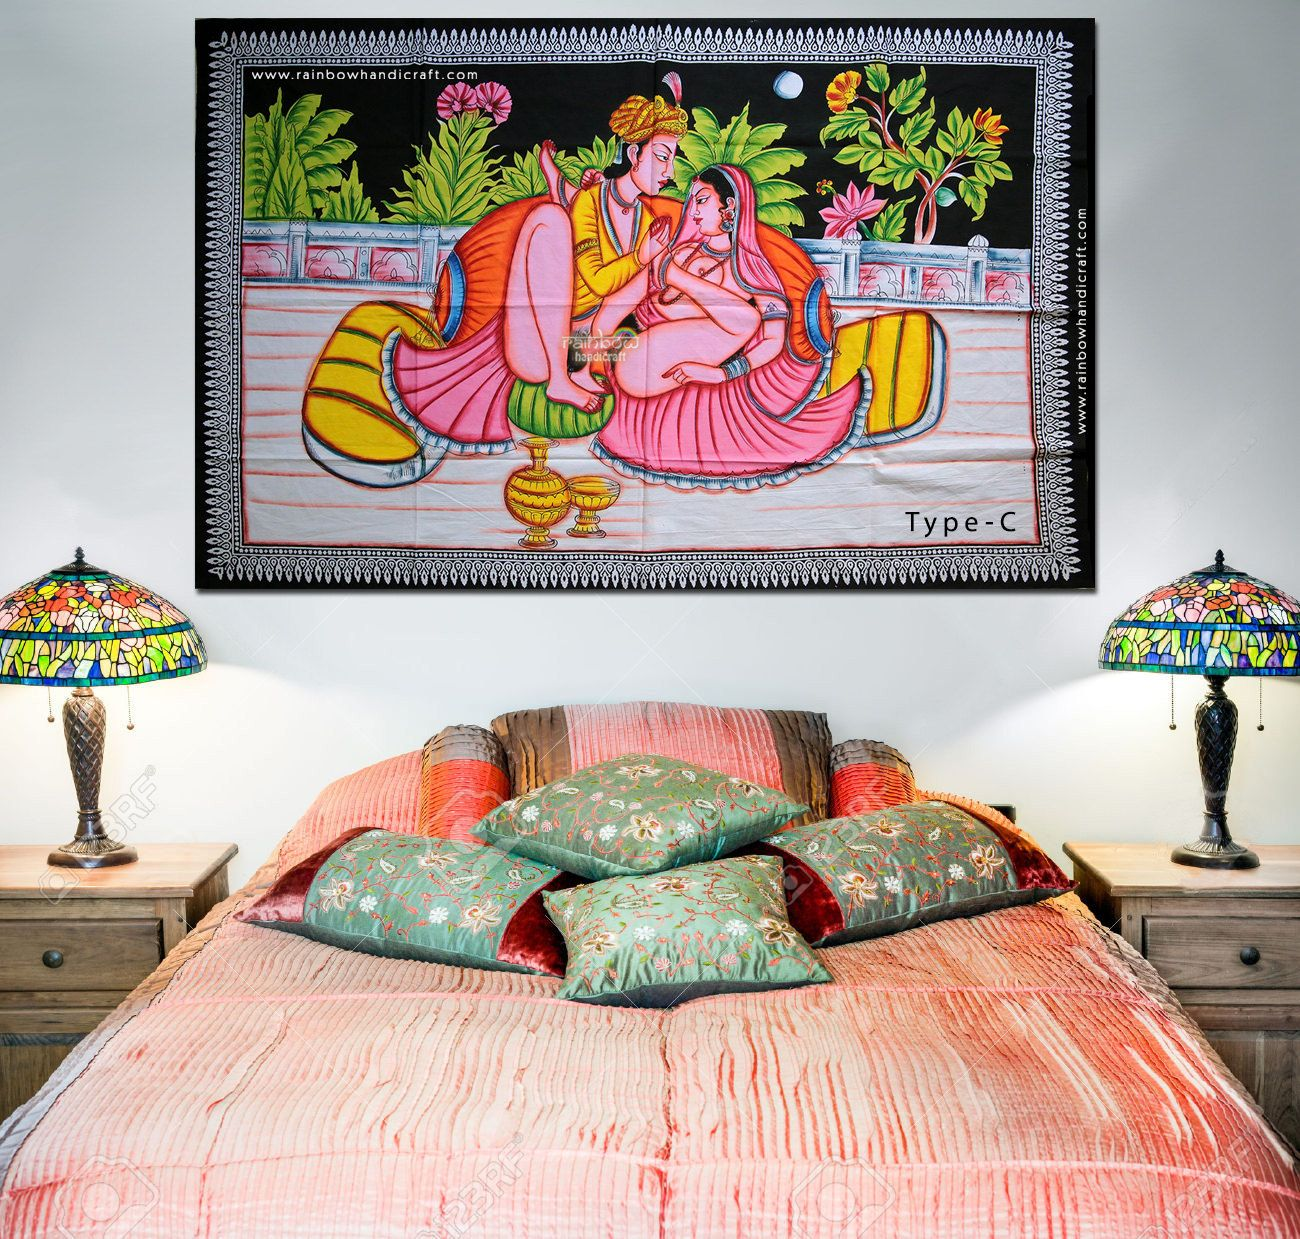 Erotic kamasutra sex position painting batik wall hanging ethnic ... for Indian Hanging Decorations  61obs